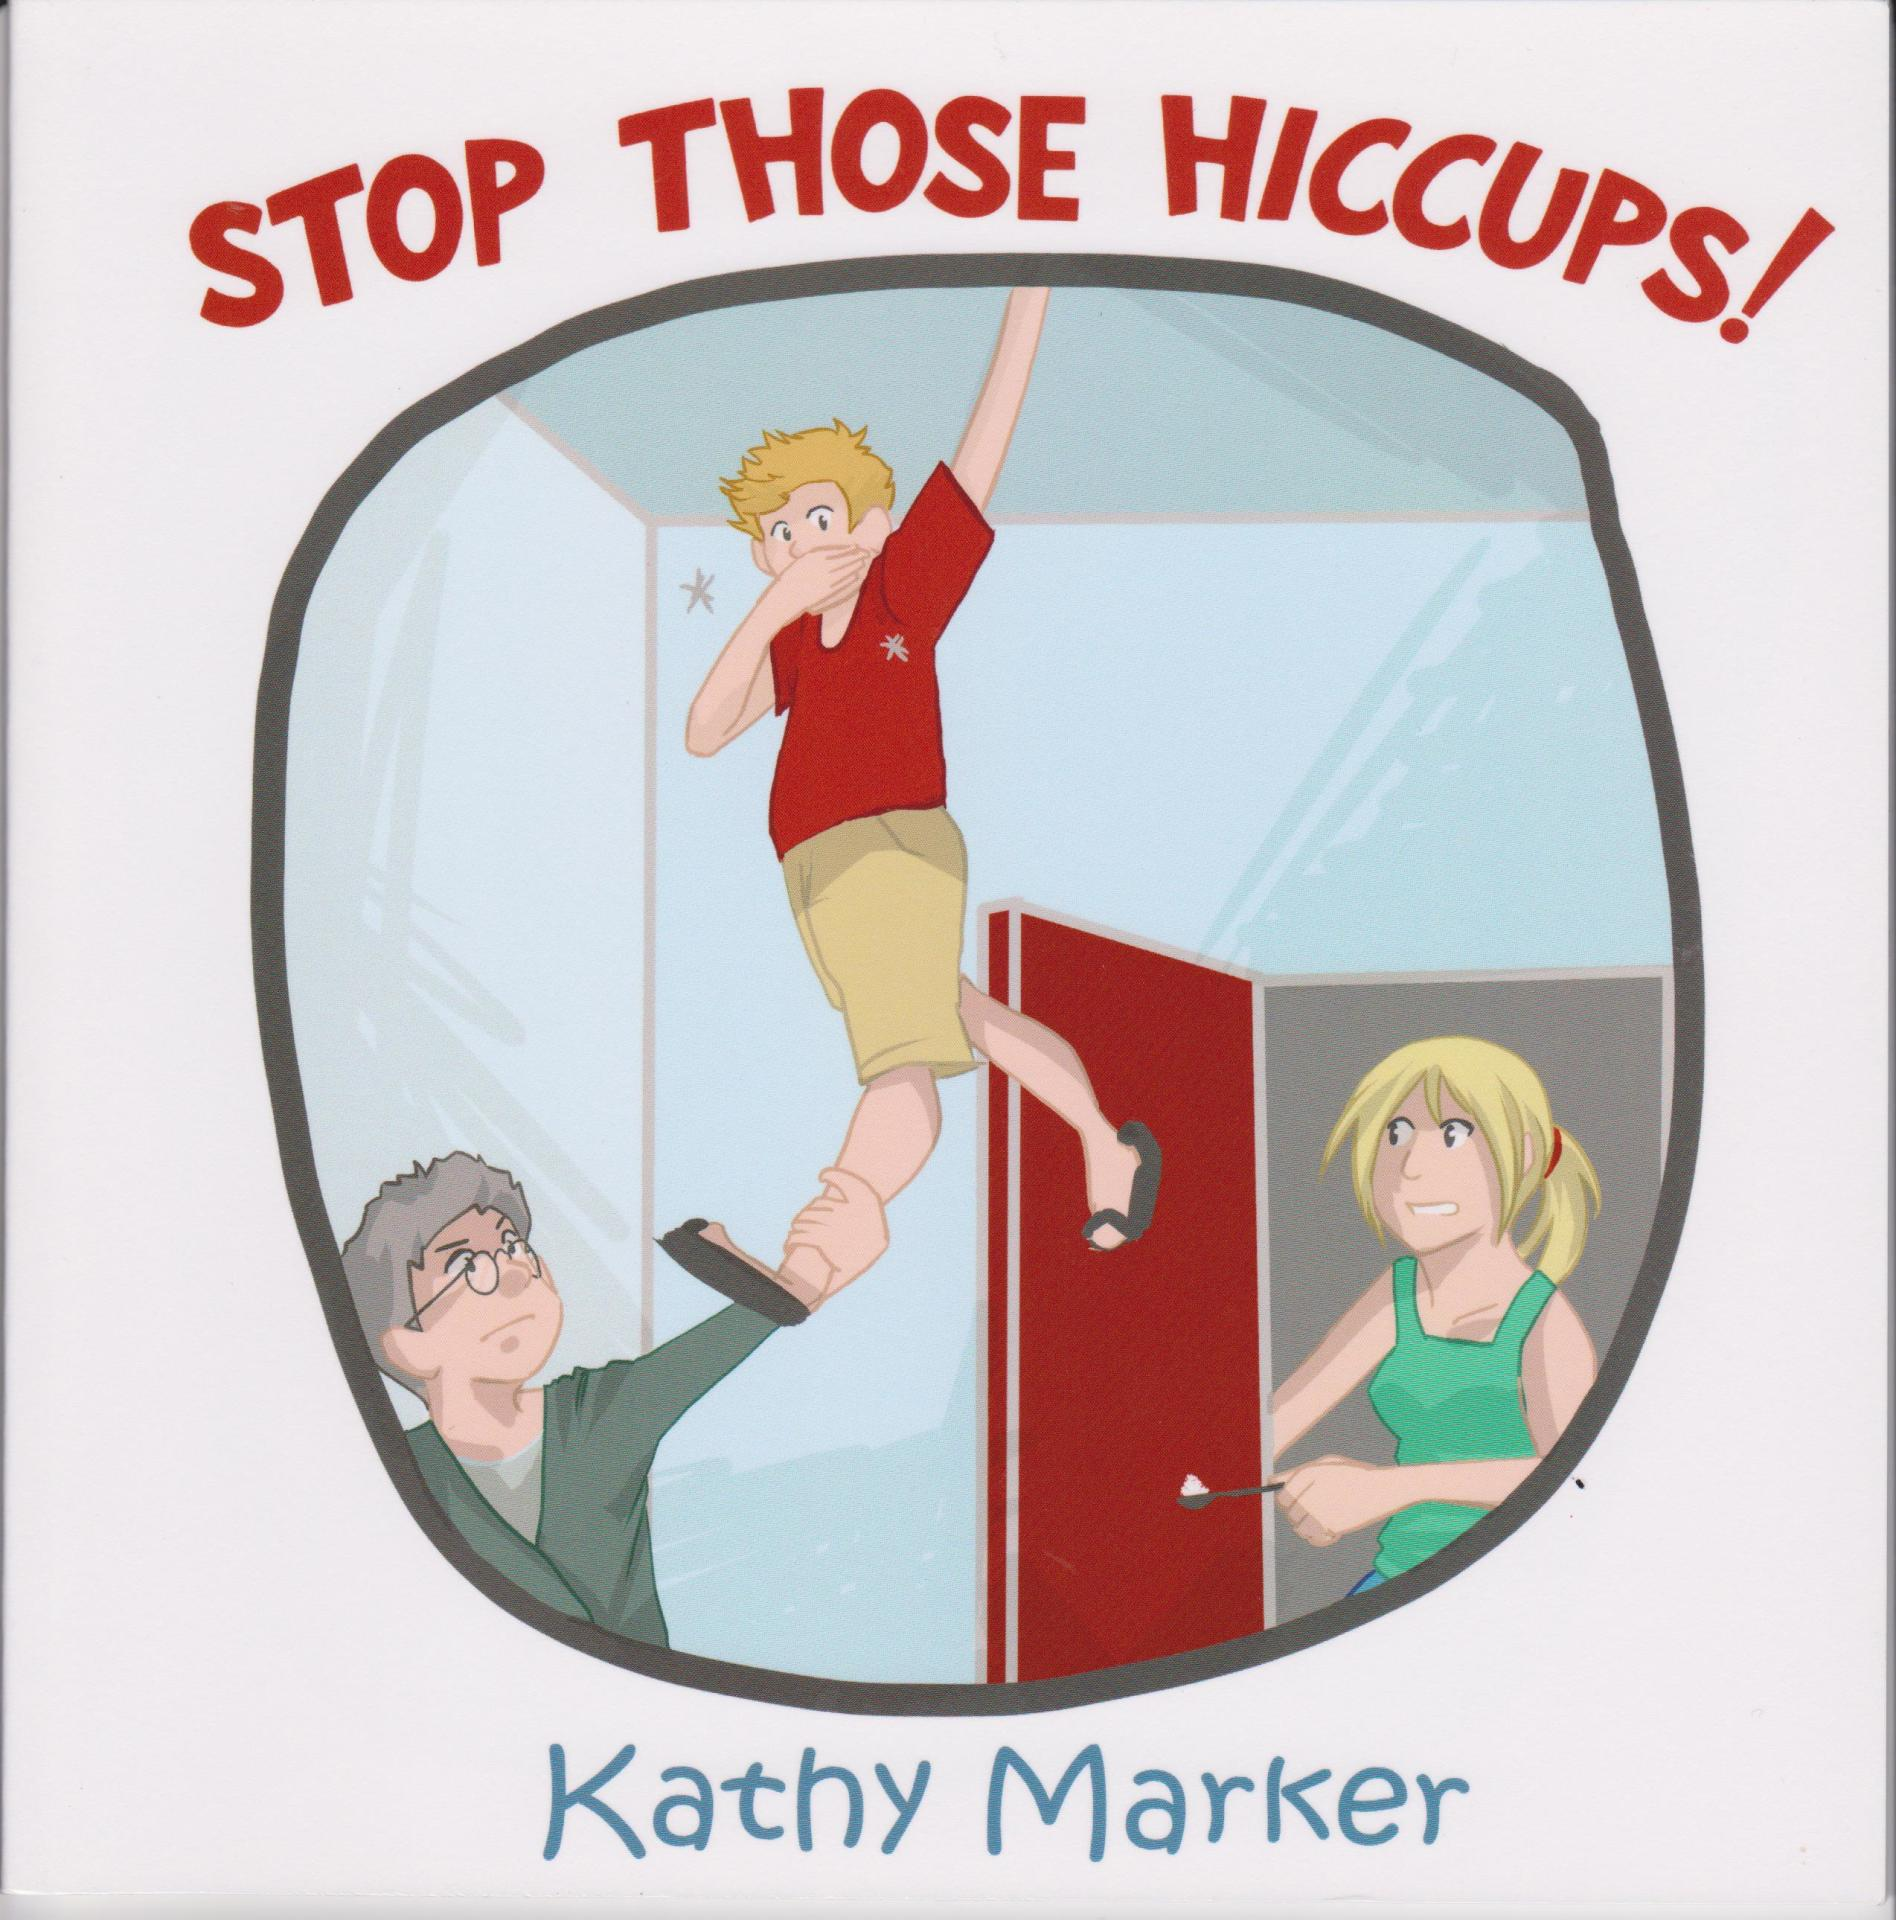 hiccups, Rowanvale, Kathy Marker